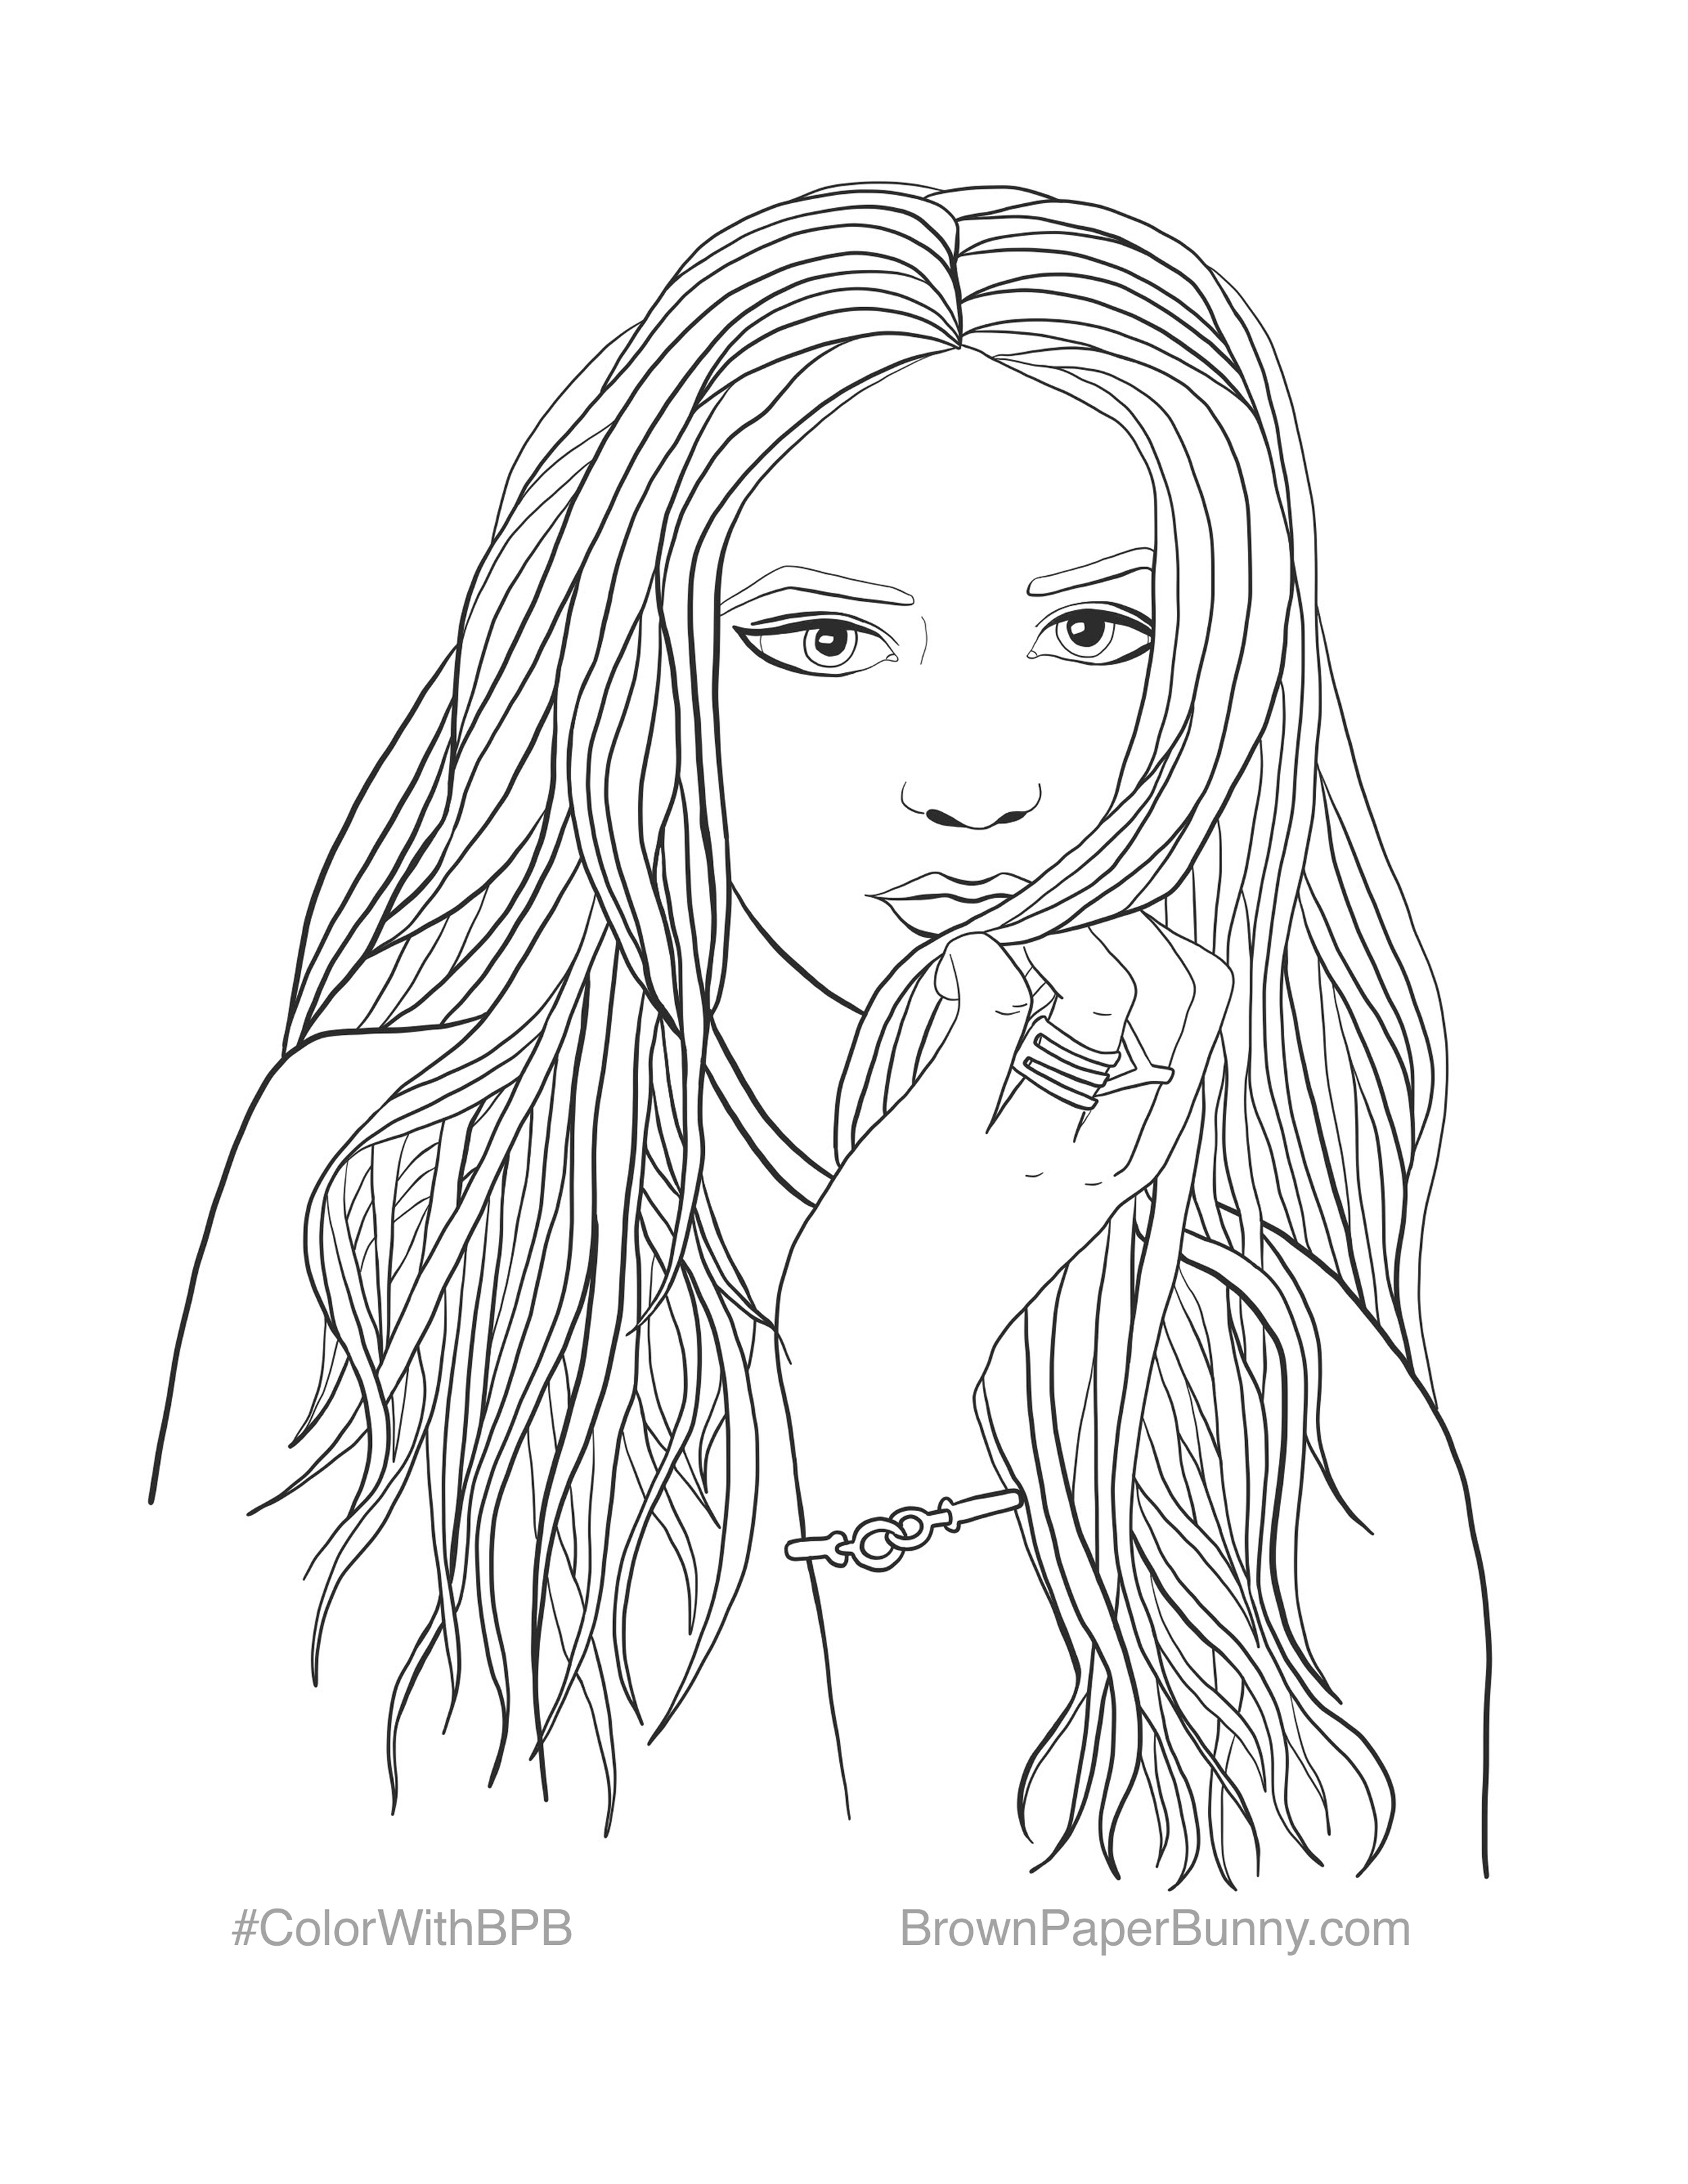 Free Coloring Pages — BrownPaperBunny